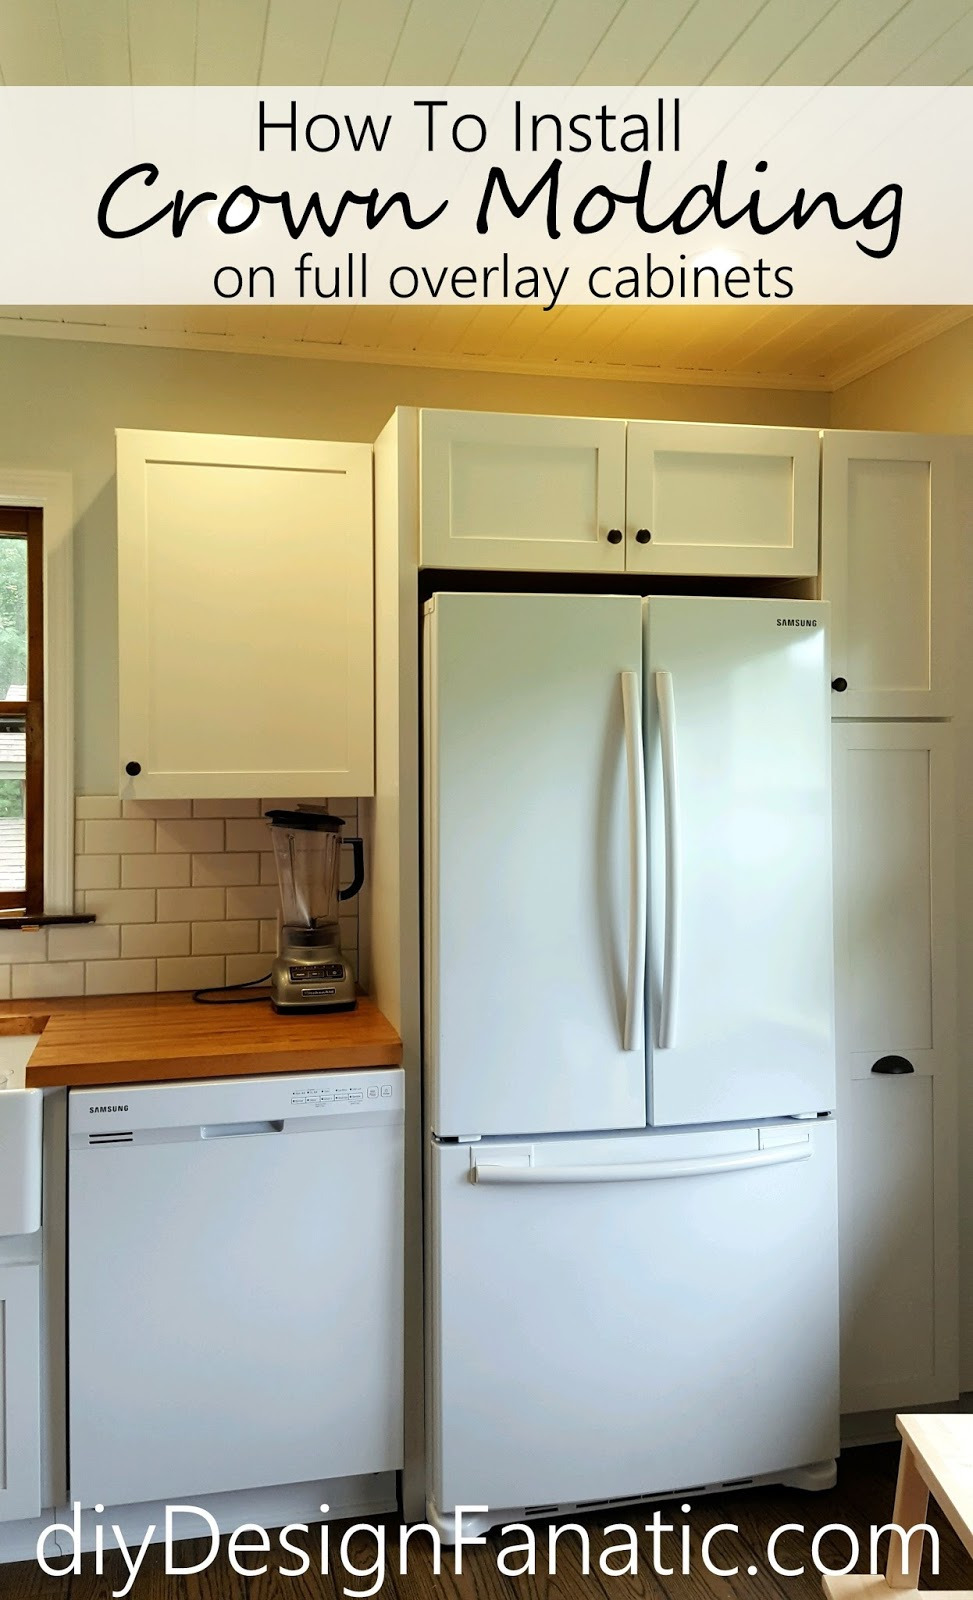 Full Overlay Cabinet Doors Beautiful Diy Design Fanatic How to Install Crown Molding Full